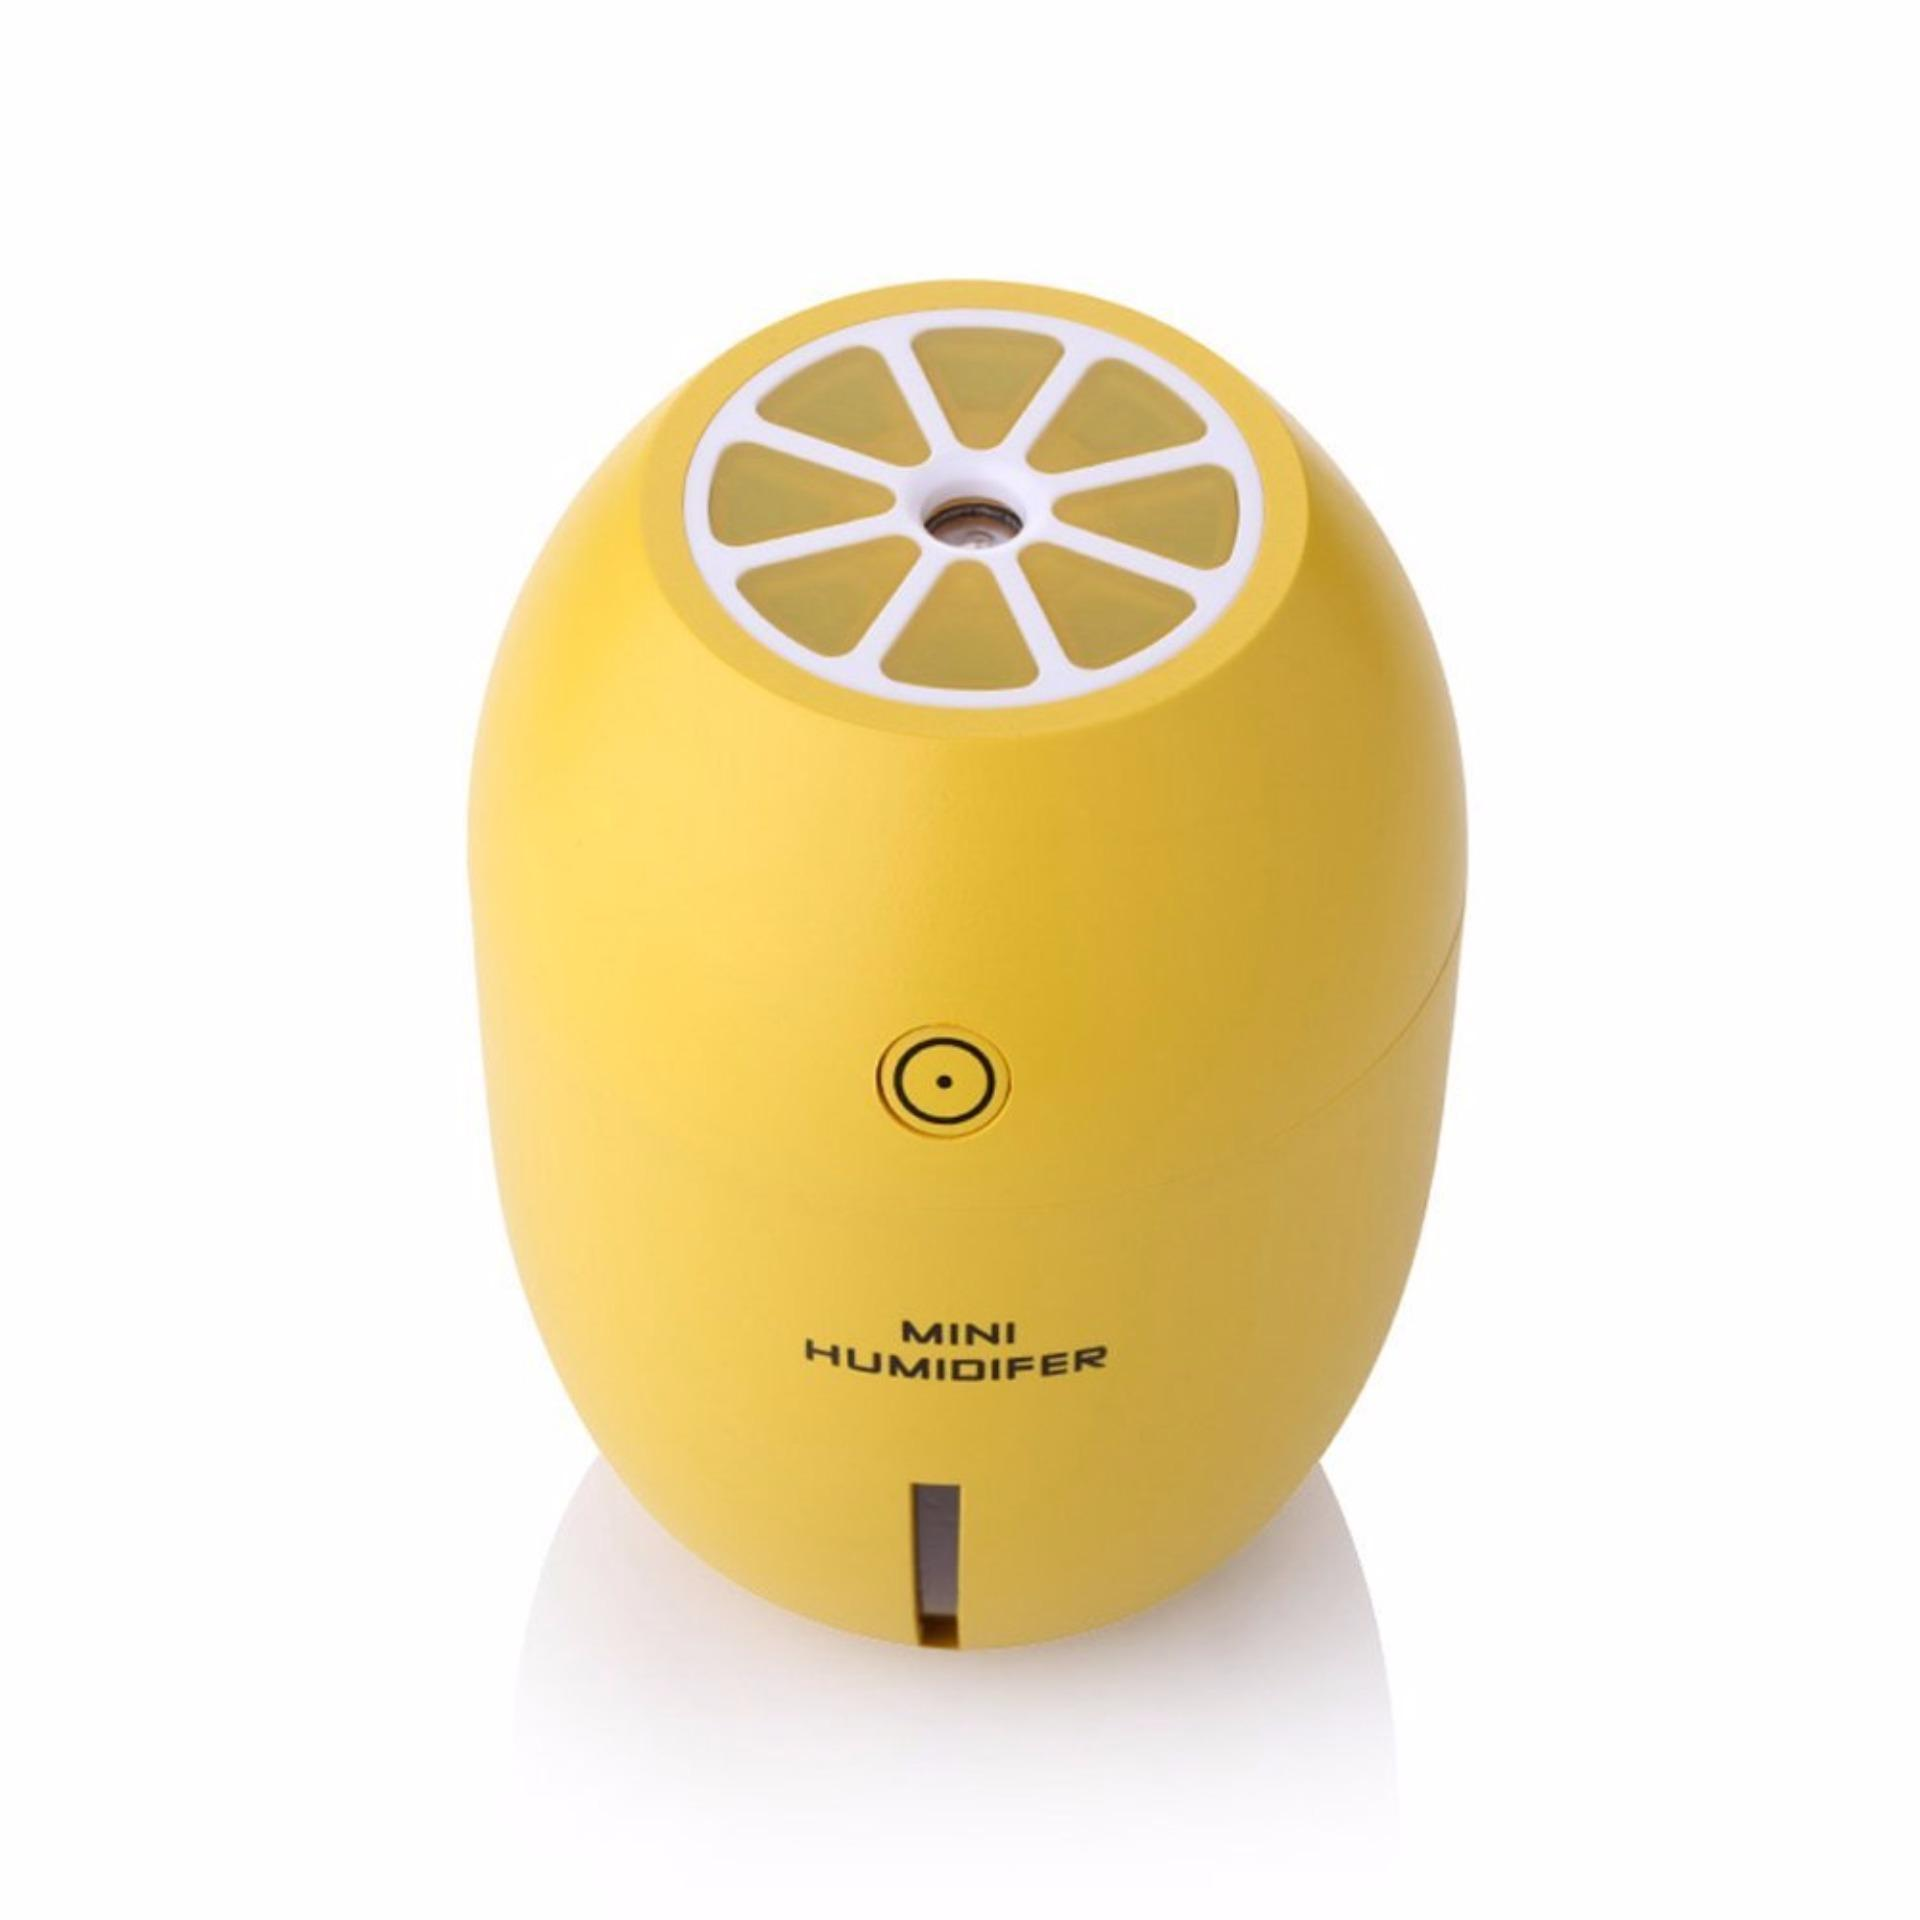 Toko Usb Lemon Humidifier With Led Light 180Ml Terlengkap